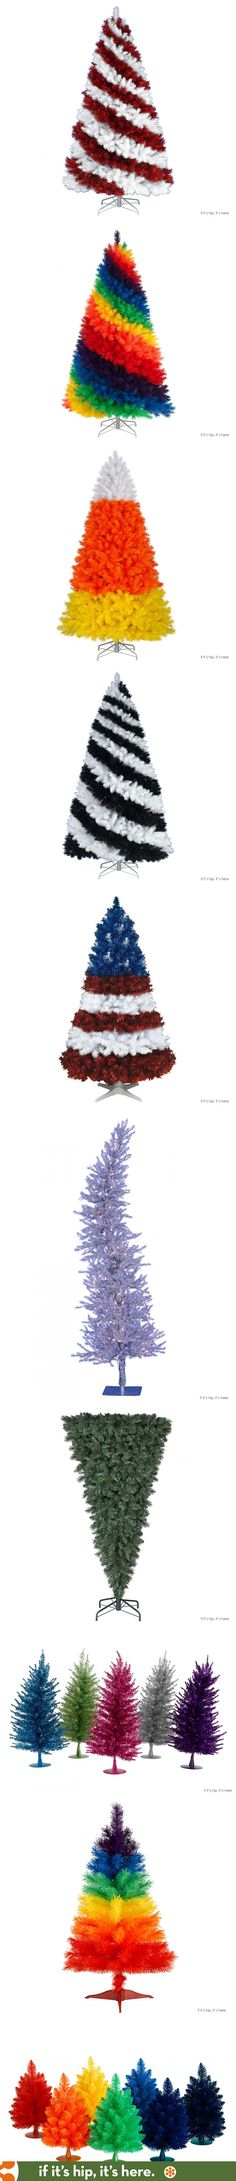 Tired of Traditional and Wooden Christmas Trees? Here are some wacky alternatives for you.